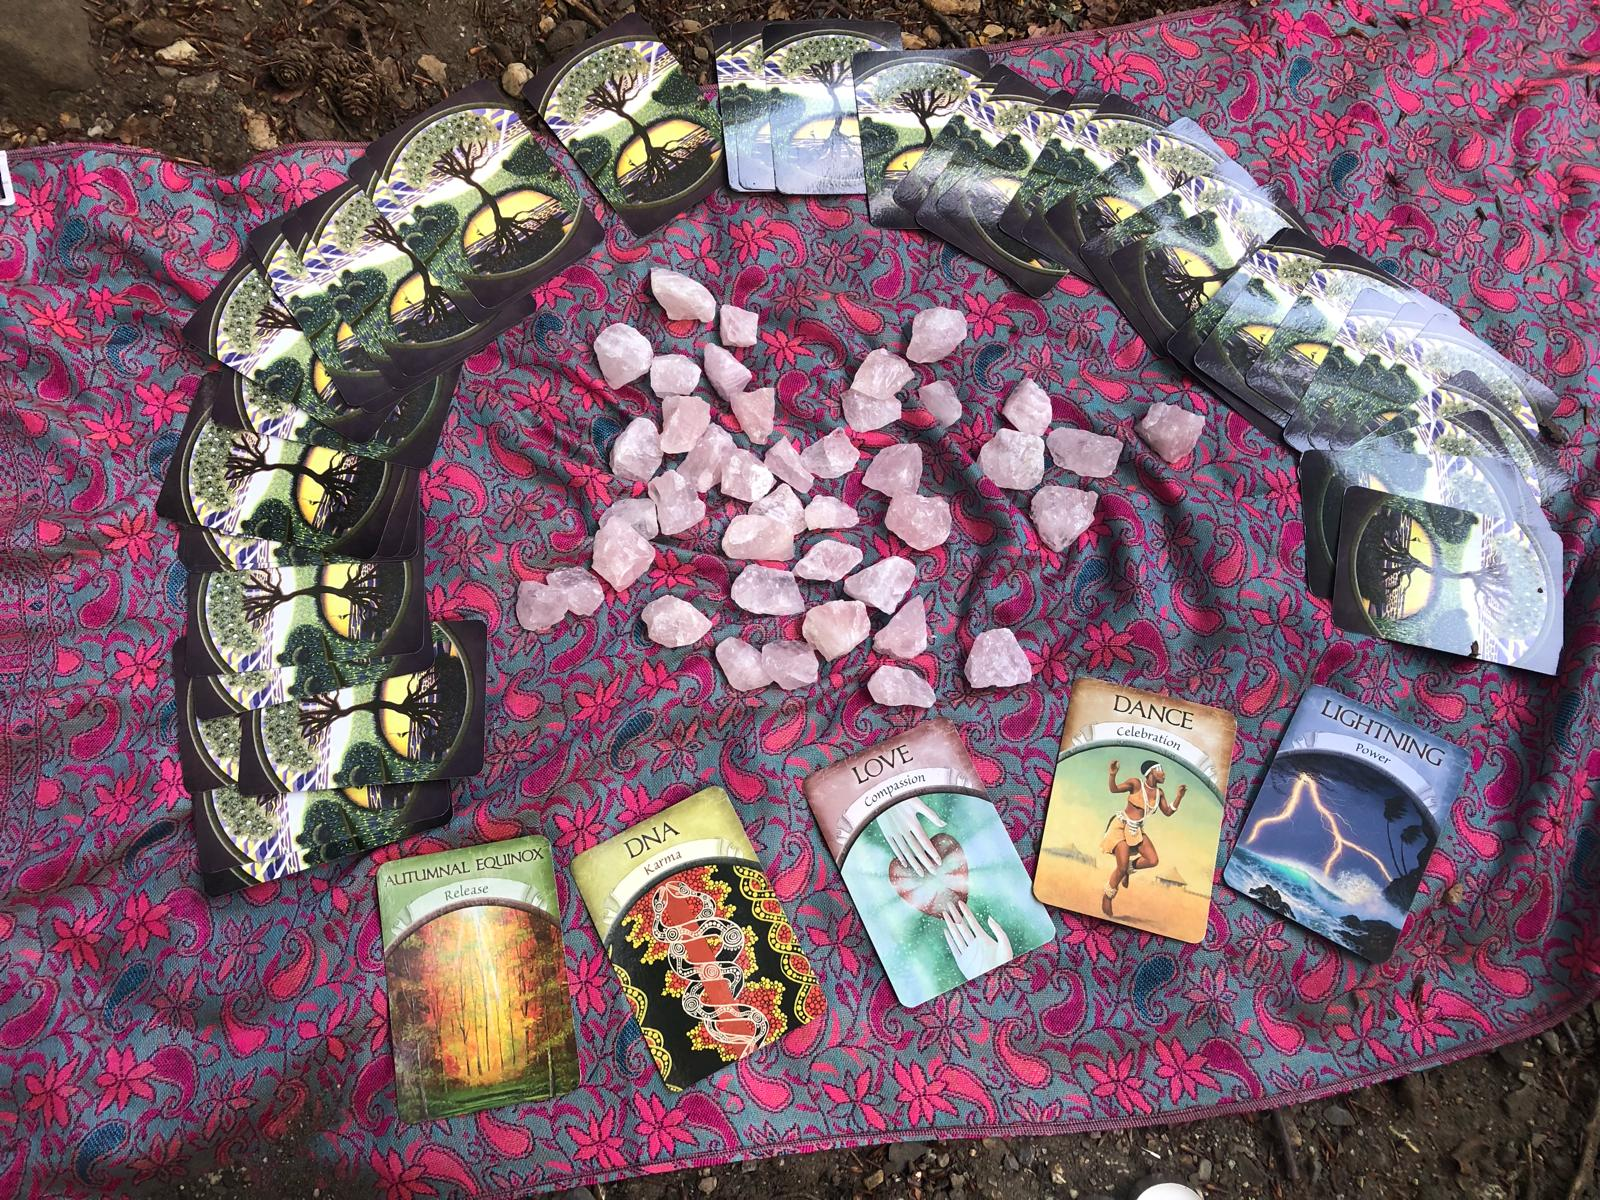 We will be choosing Oracle cards to help guide our New Moon Intentions